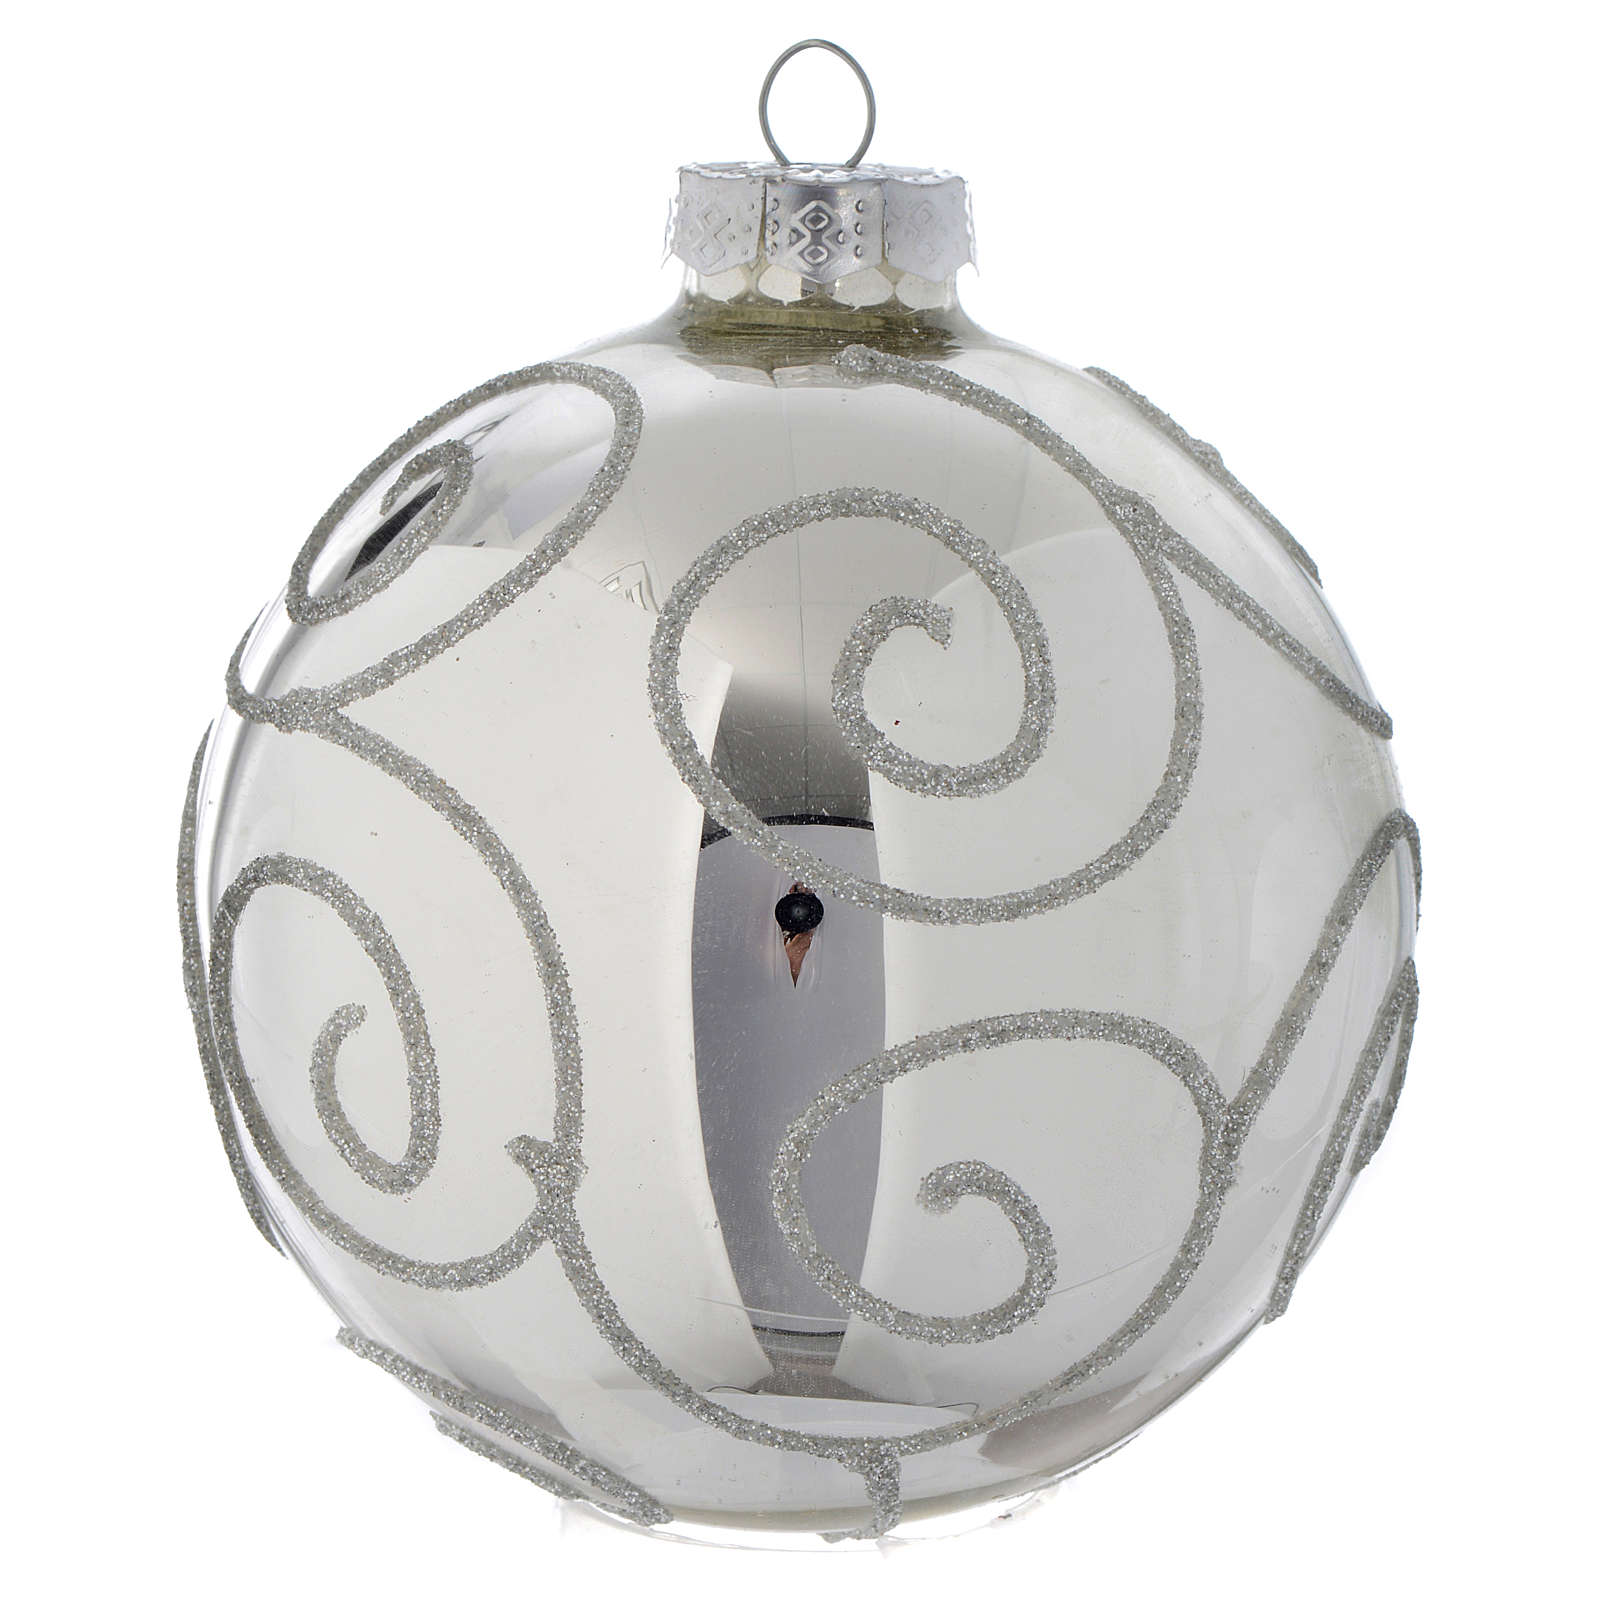 Glass bauble, silver with glitter, 90mm diameter 4